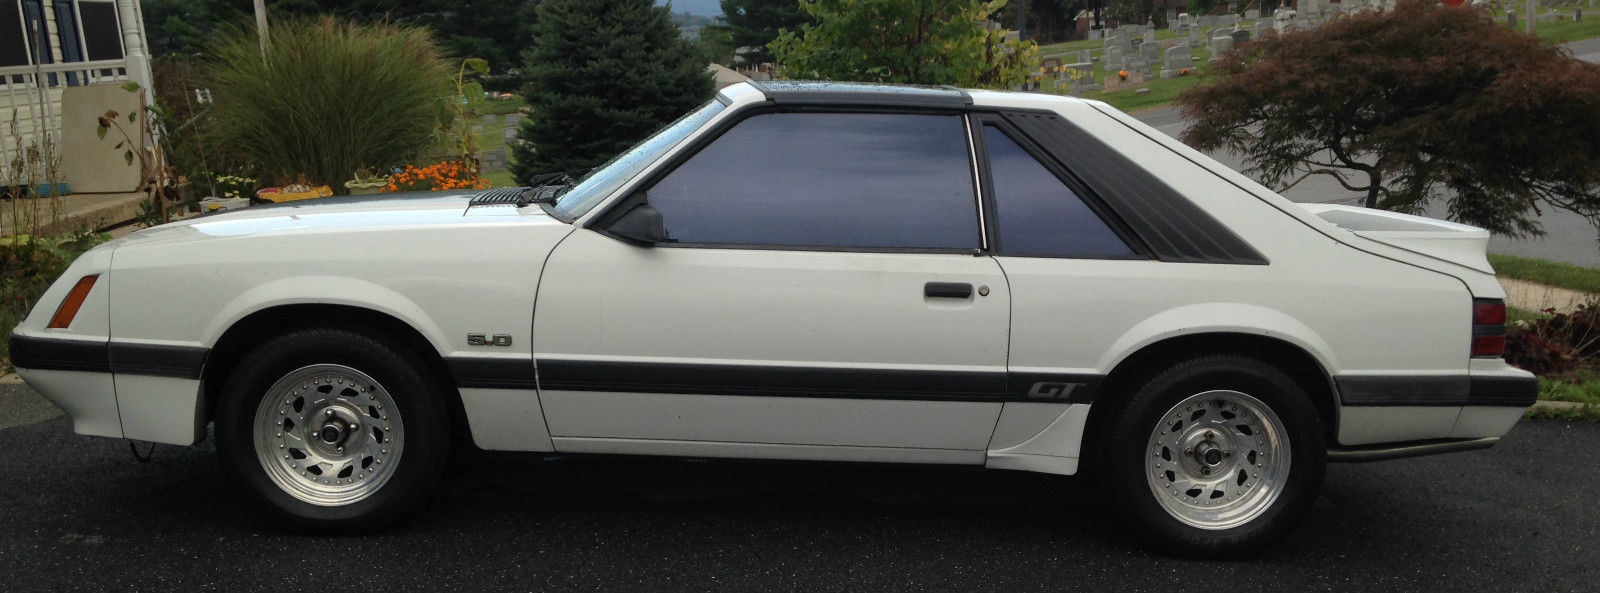 1985 mustang gt w t tops classic ford mustang 1985 for sale. Black Bedroom Furniture Sets. Home Design Ideas